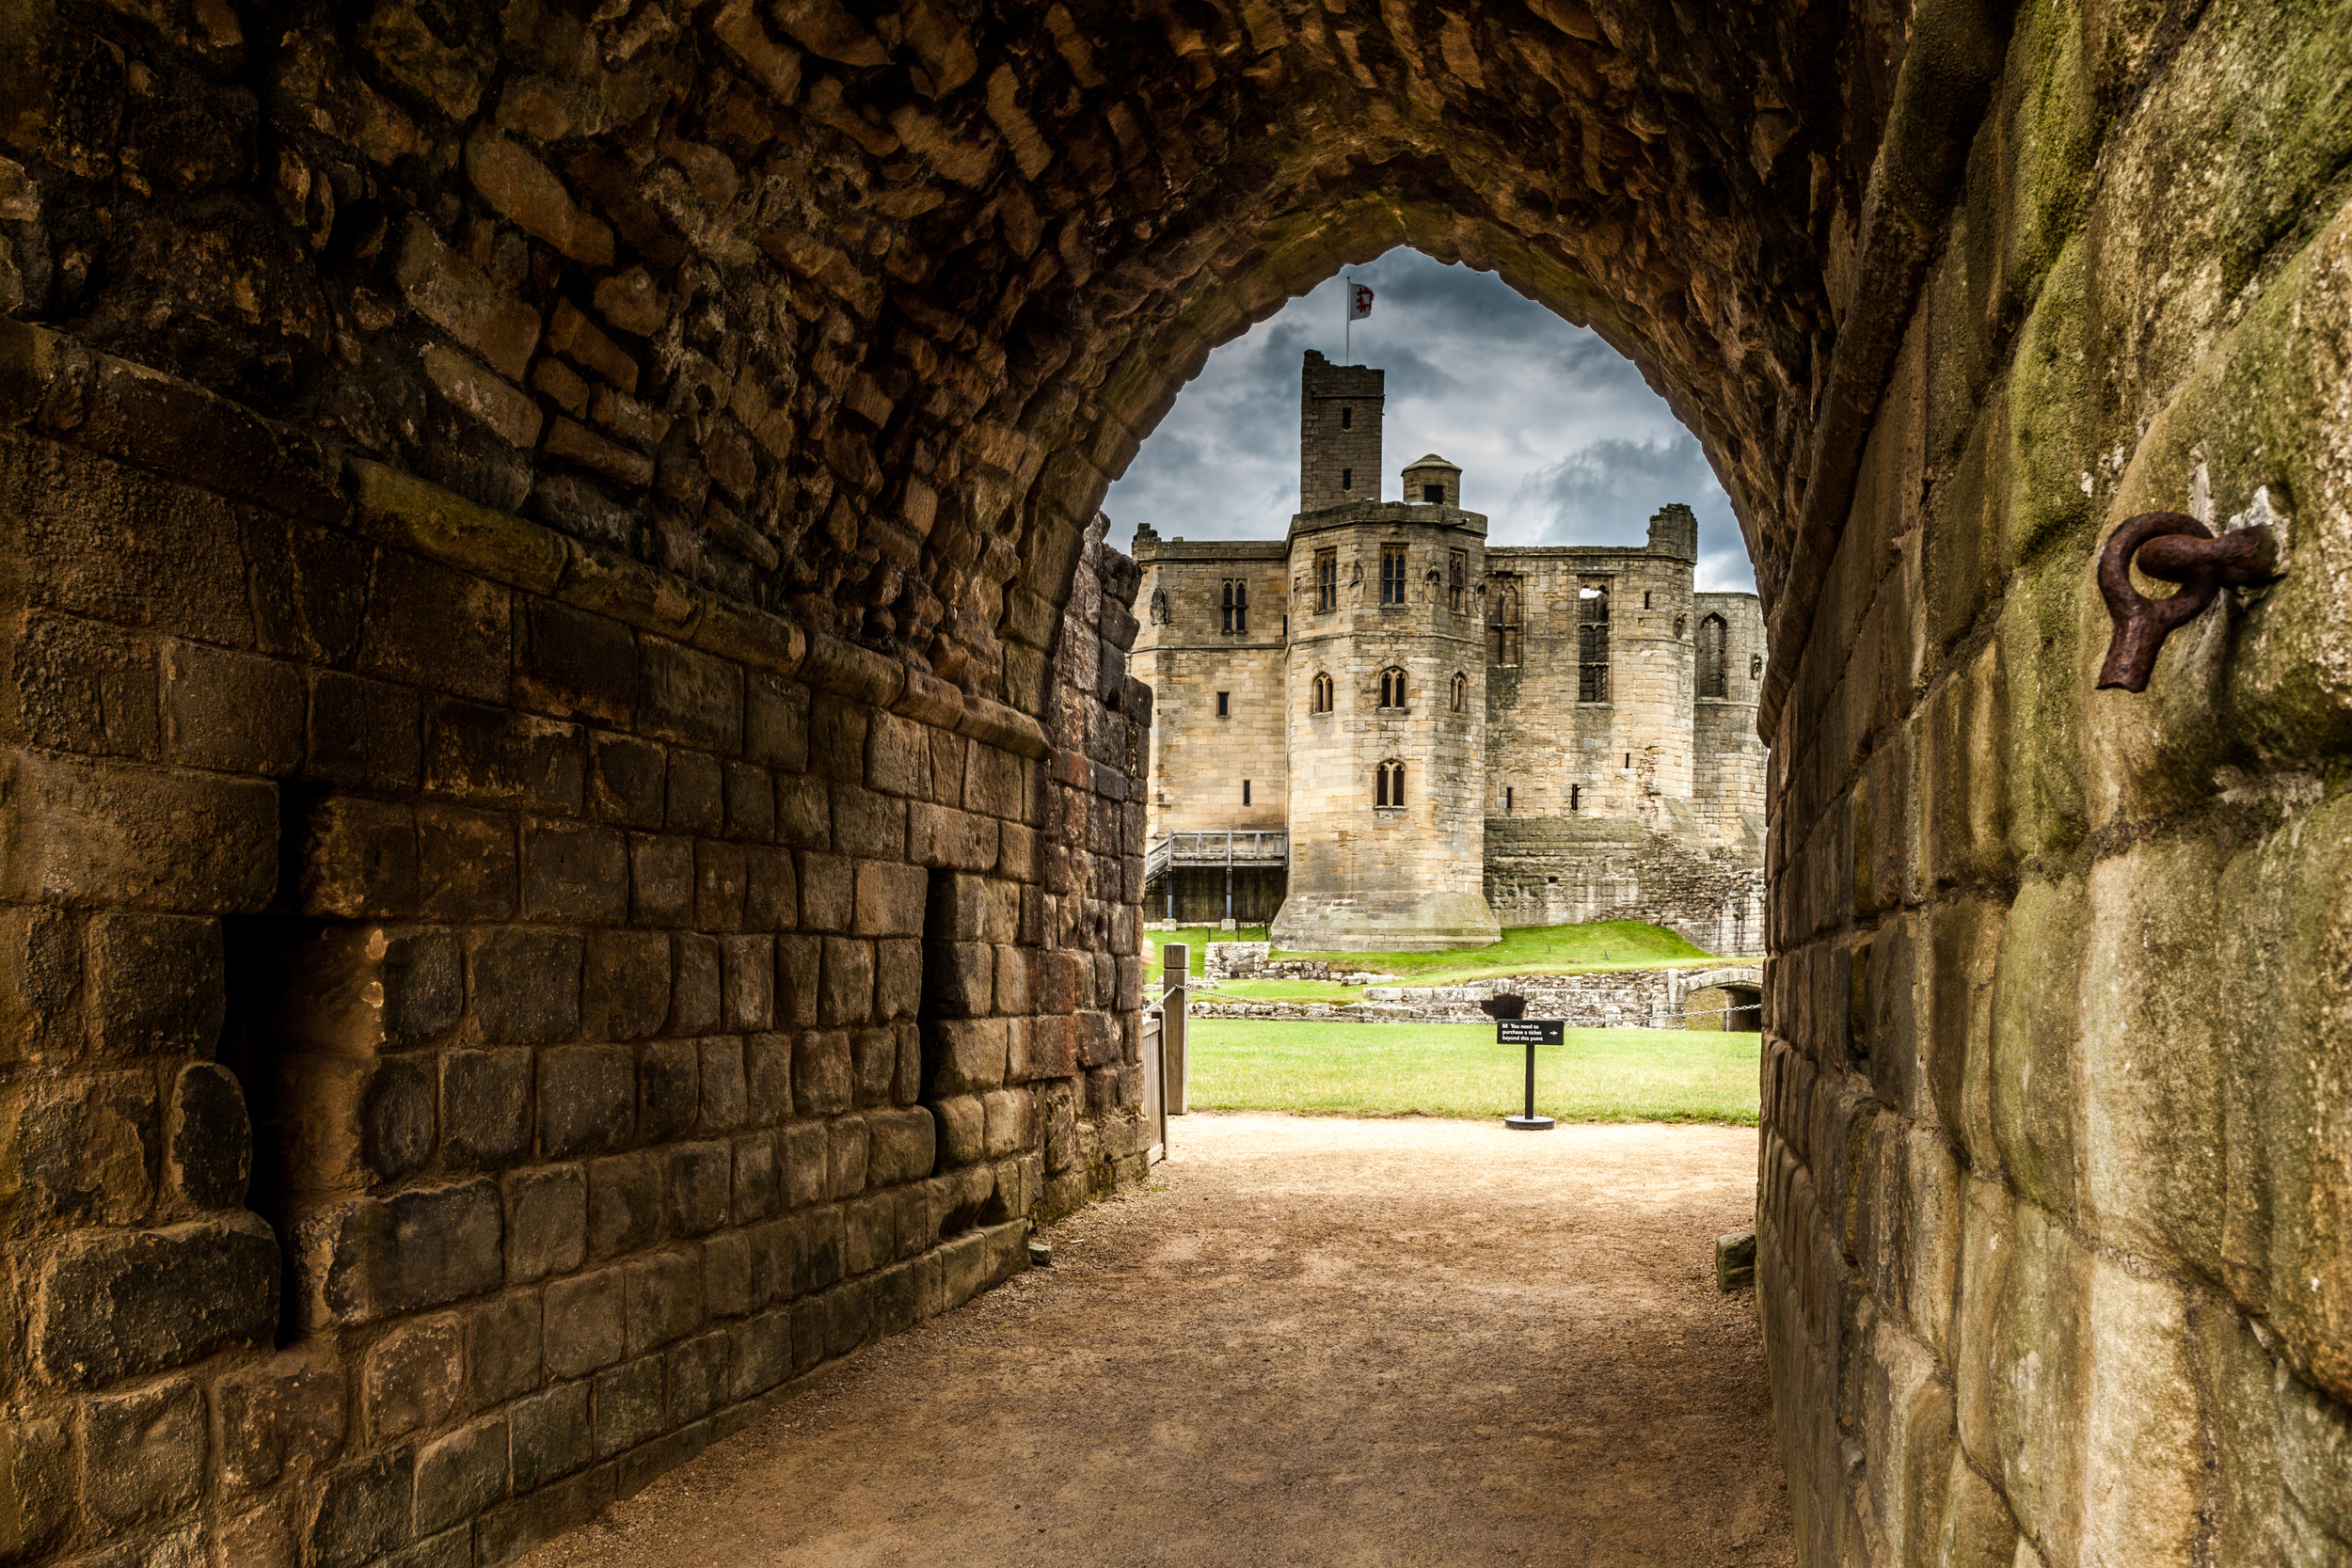 Medieval stone work and castle. England.